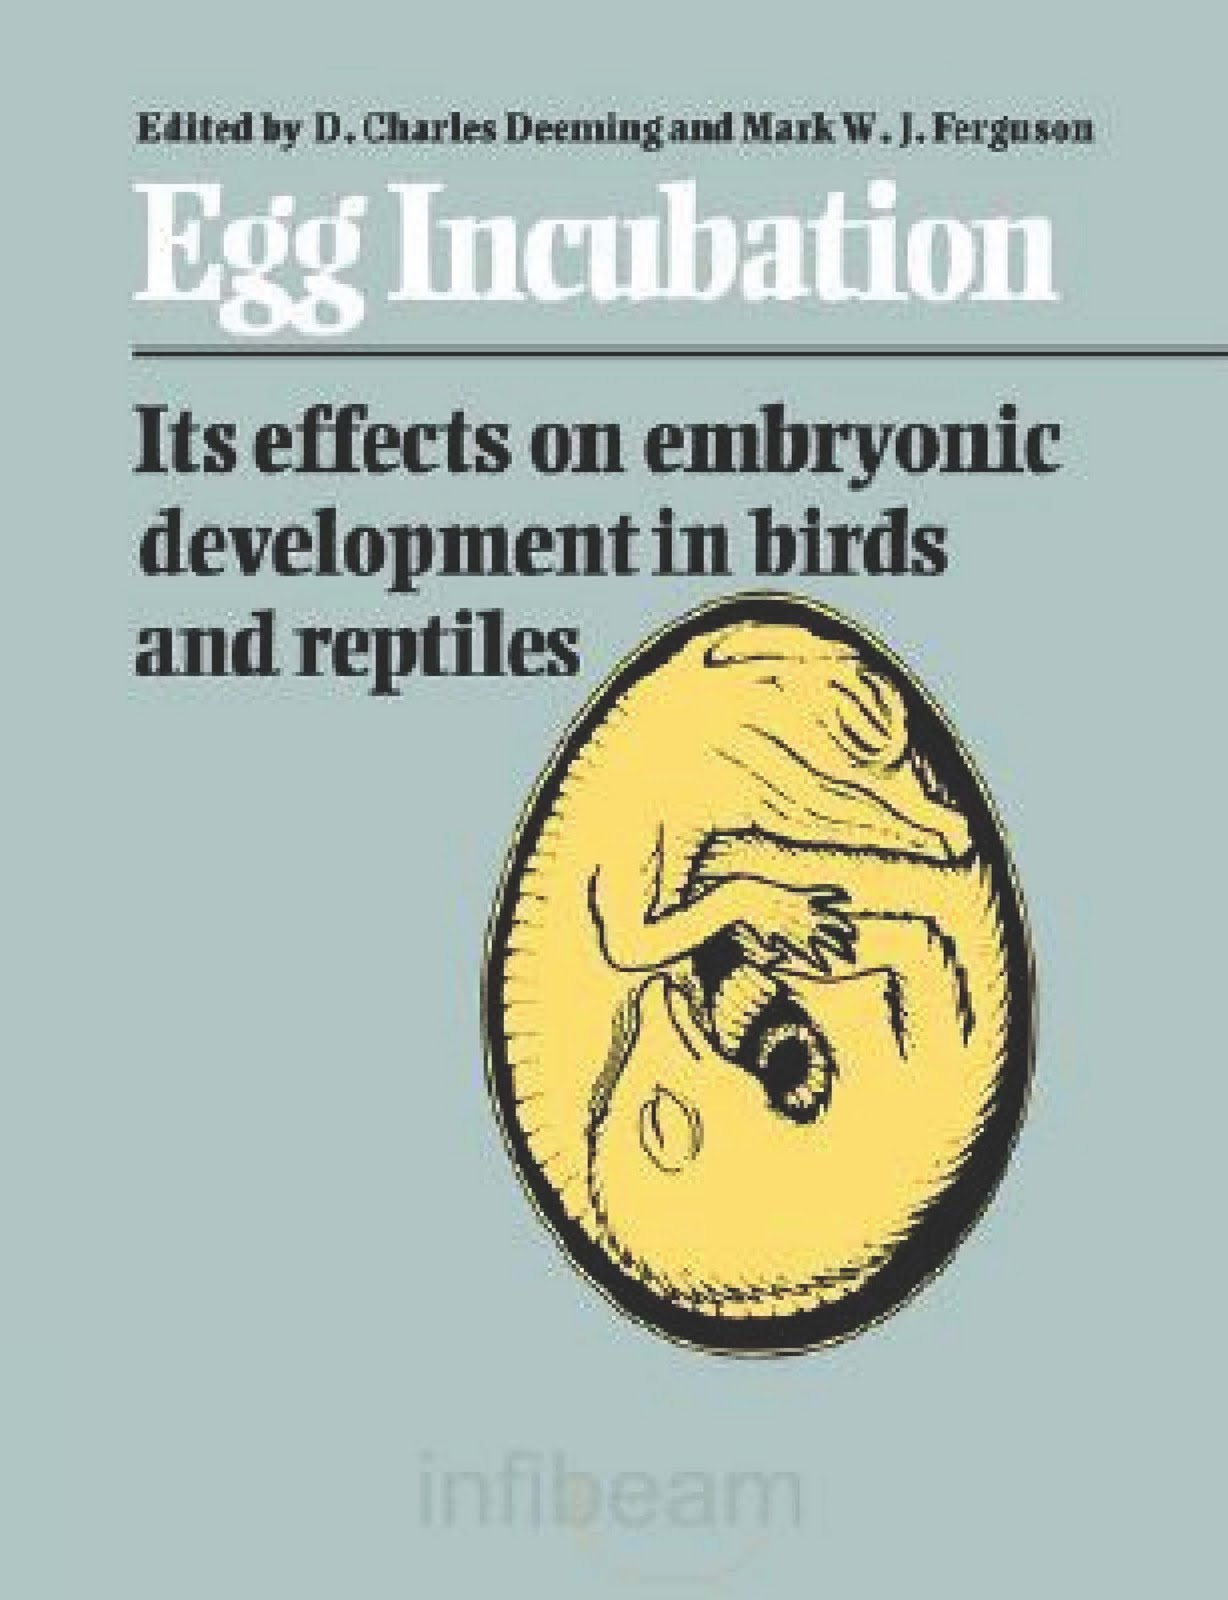 Egg Development in Birds http://hadesues.blogspot.com/2010/08/egg-incubation-its-effects-on-embryonic.html